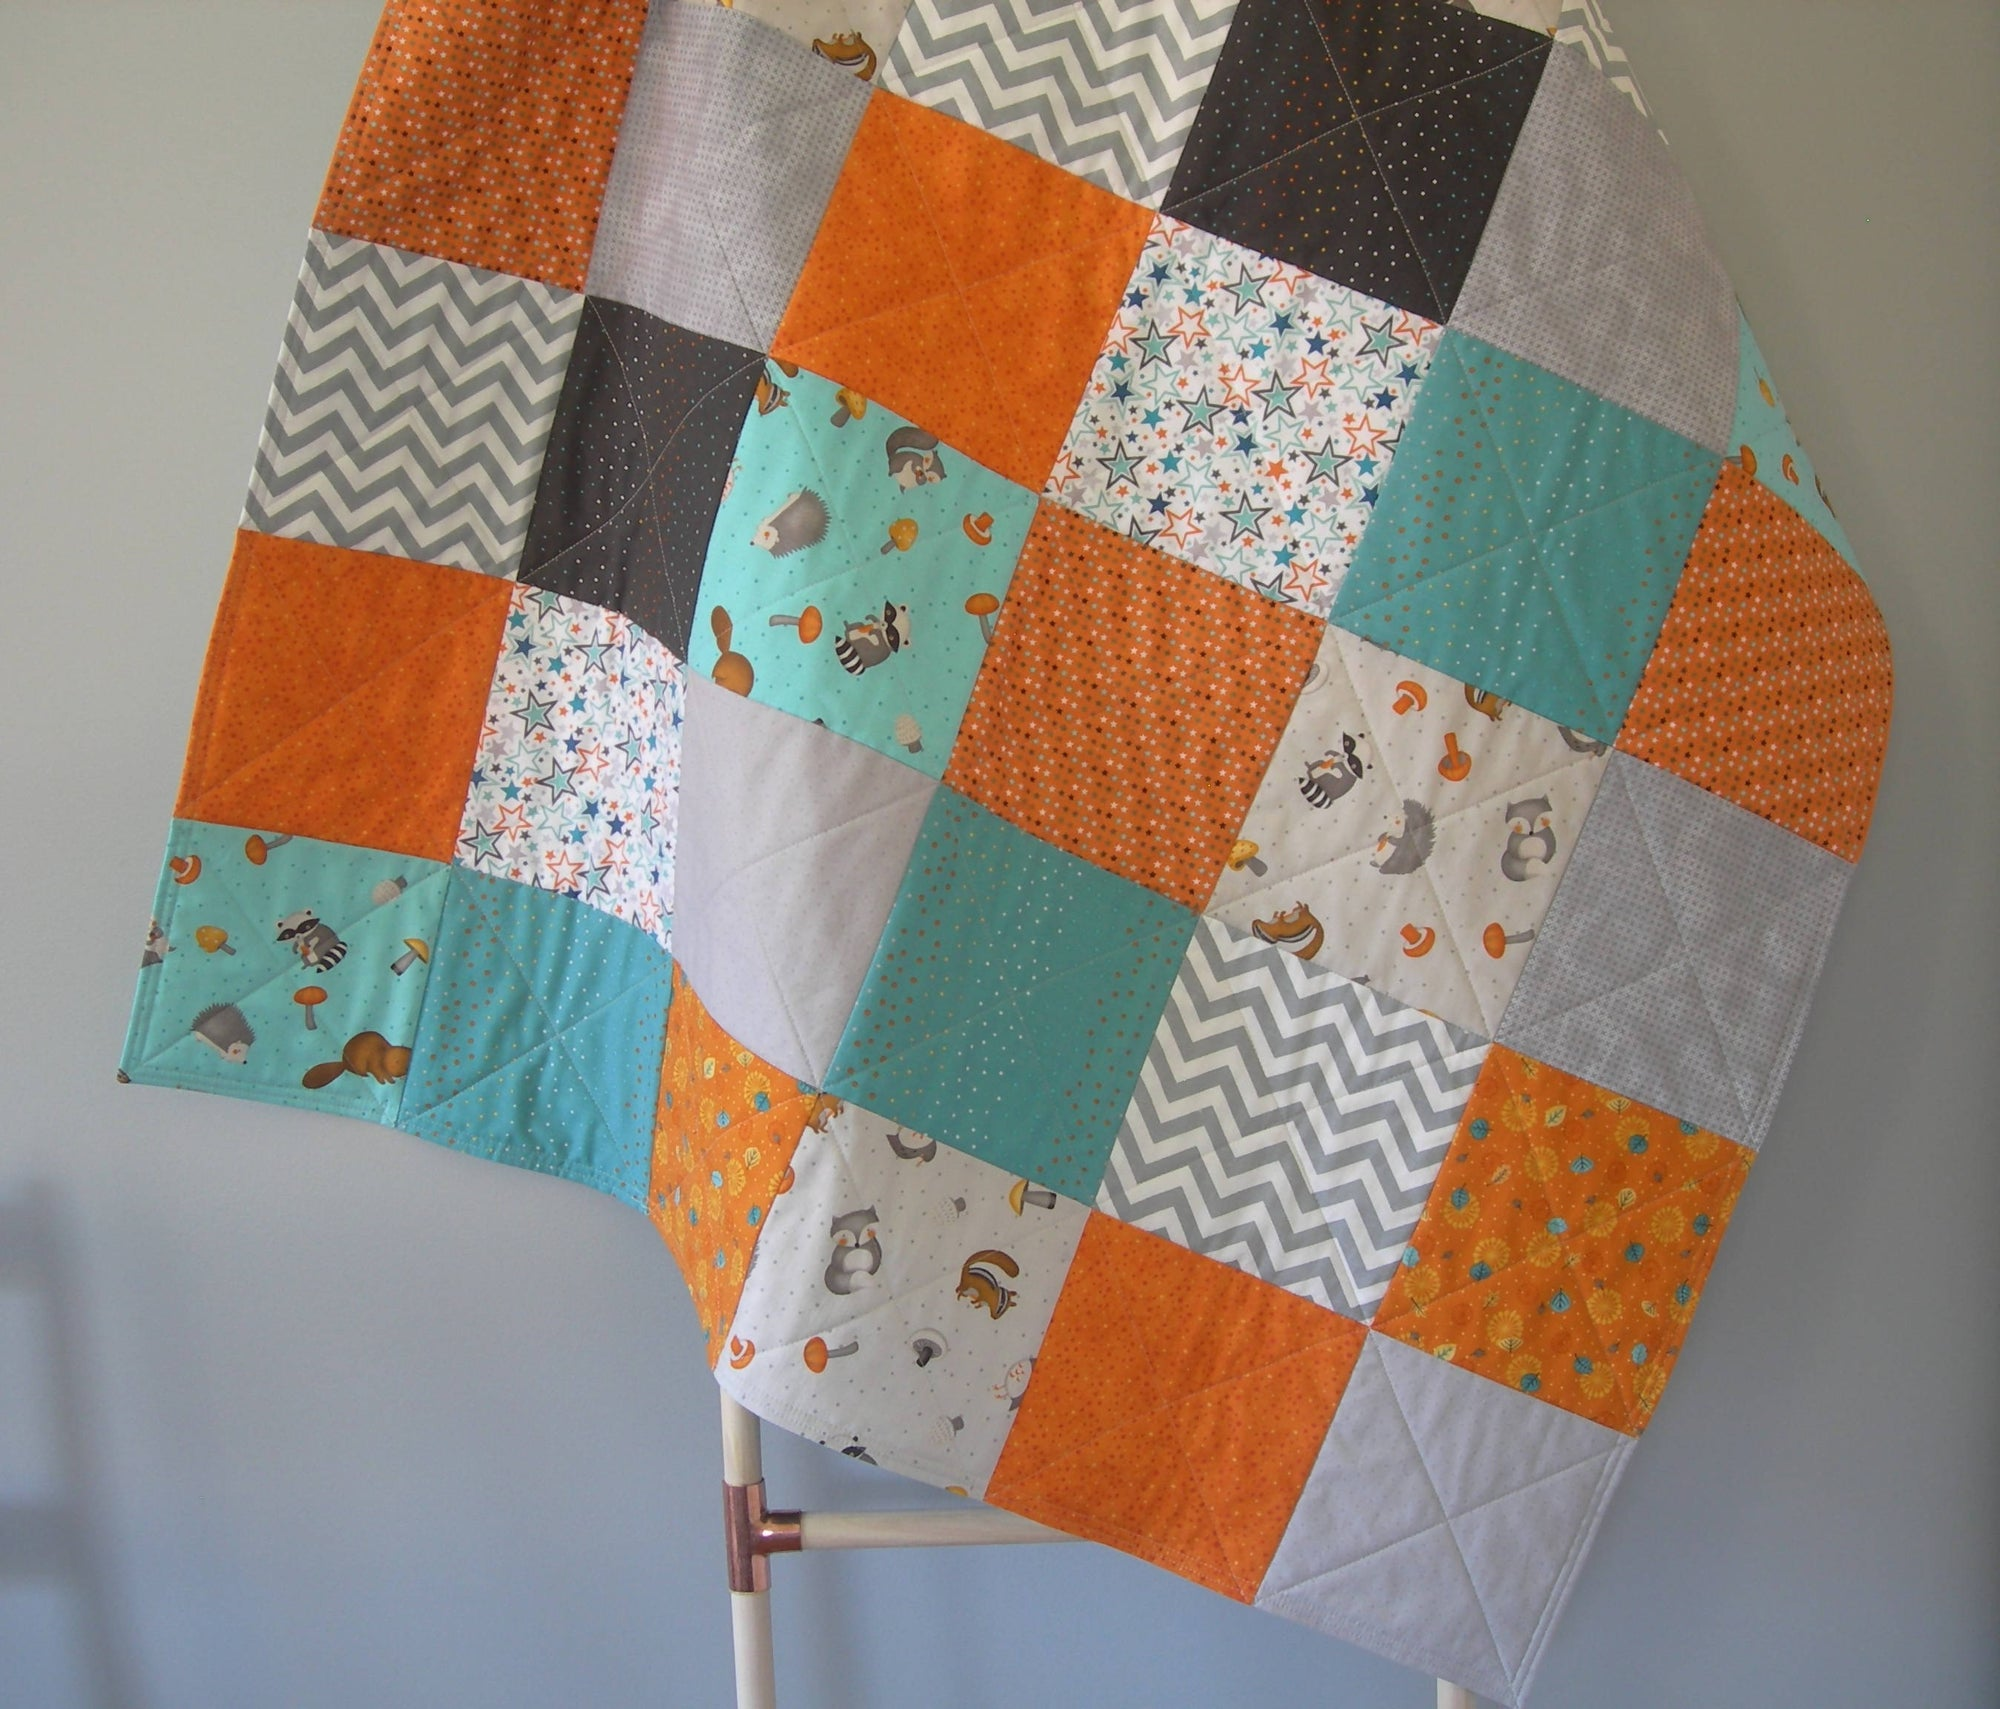 Woodland Patchwork Baby Quilt - Grey, Turquoise, Orange - 48 x 41 inches